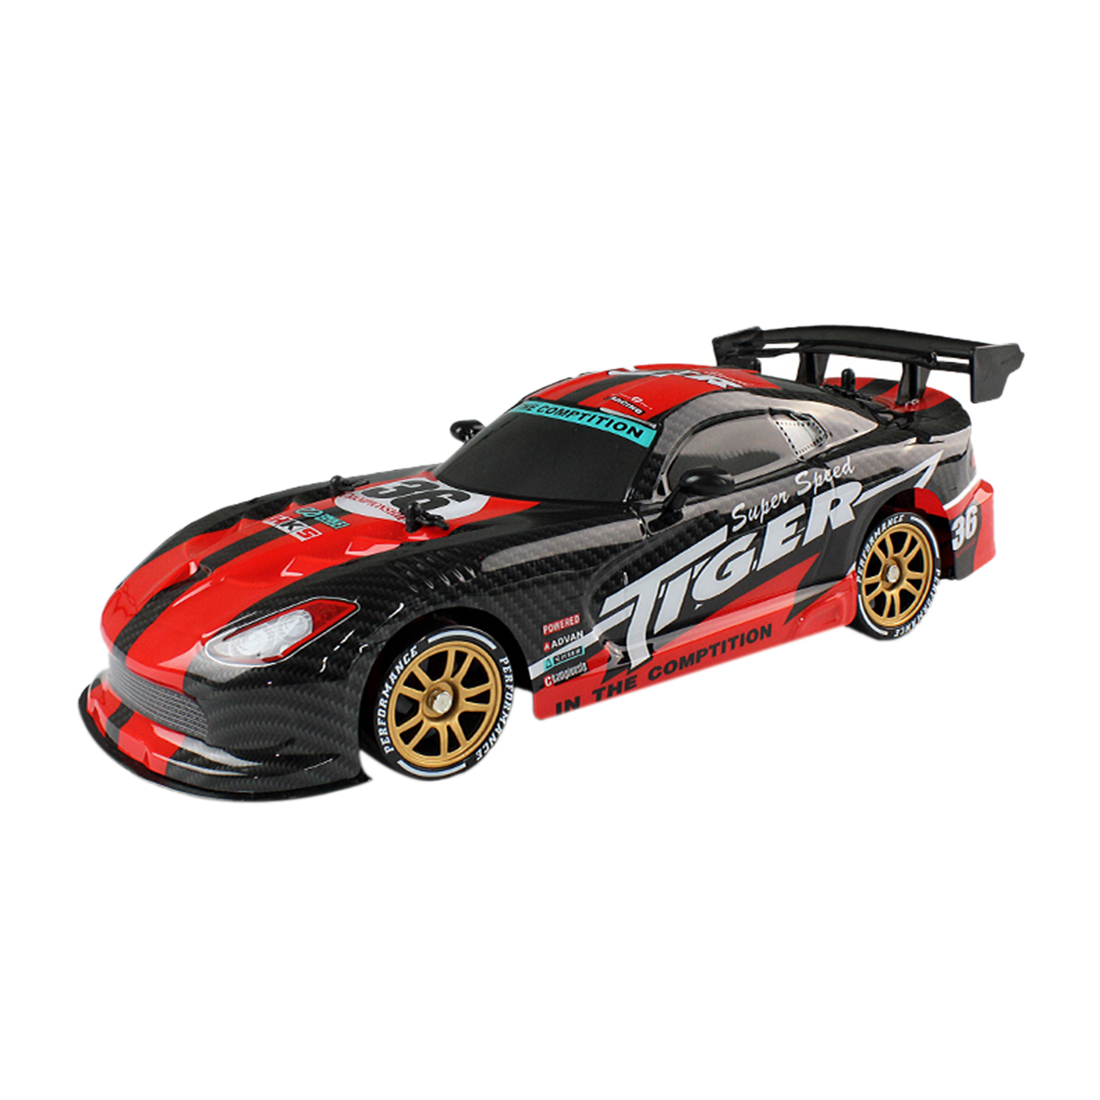 TAAIW C1 2.4G 1:16 4-Wheel Drive Remote Control Drift Racing Simulated Tire Toy for Children - Red/Blue